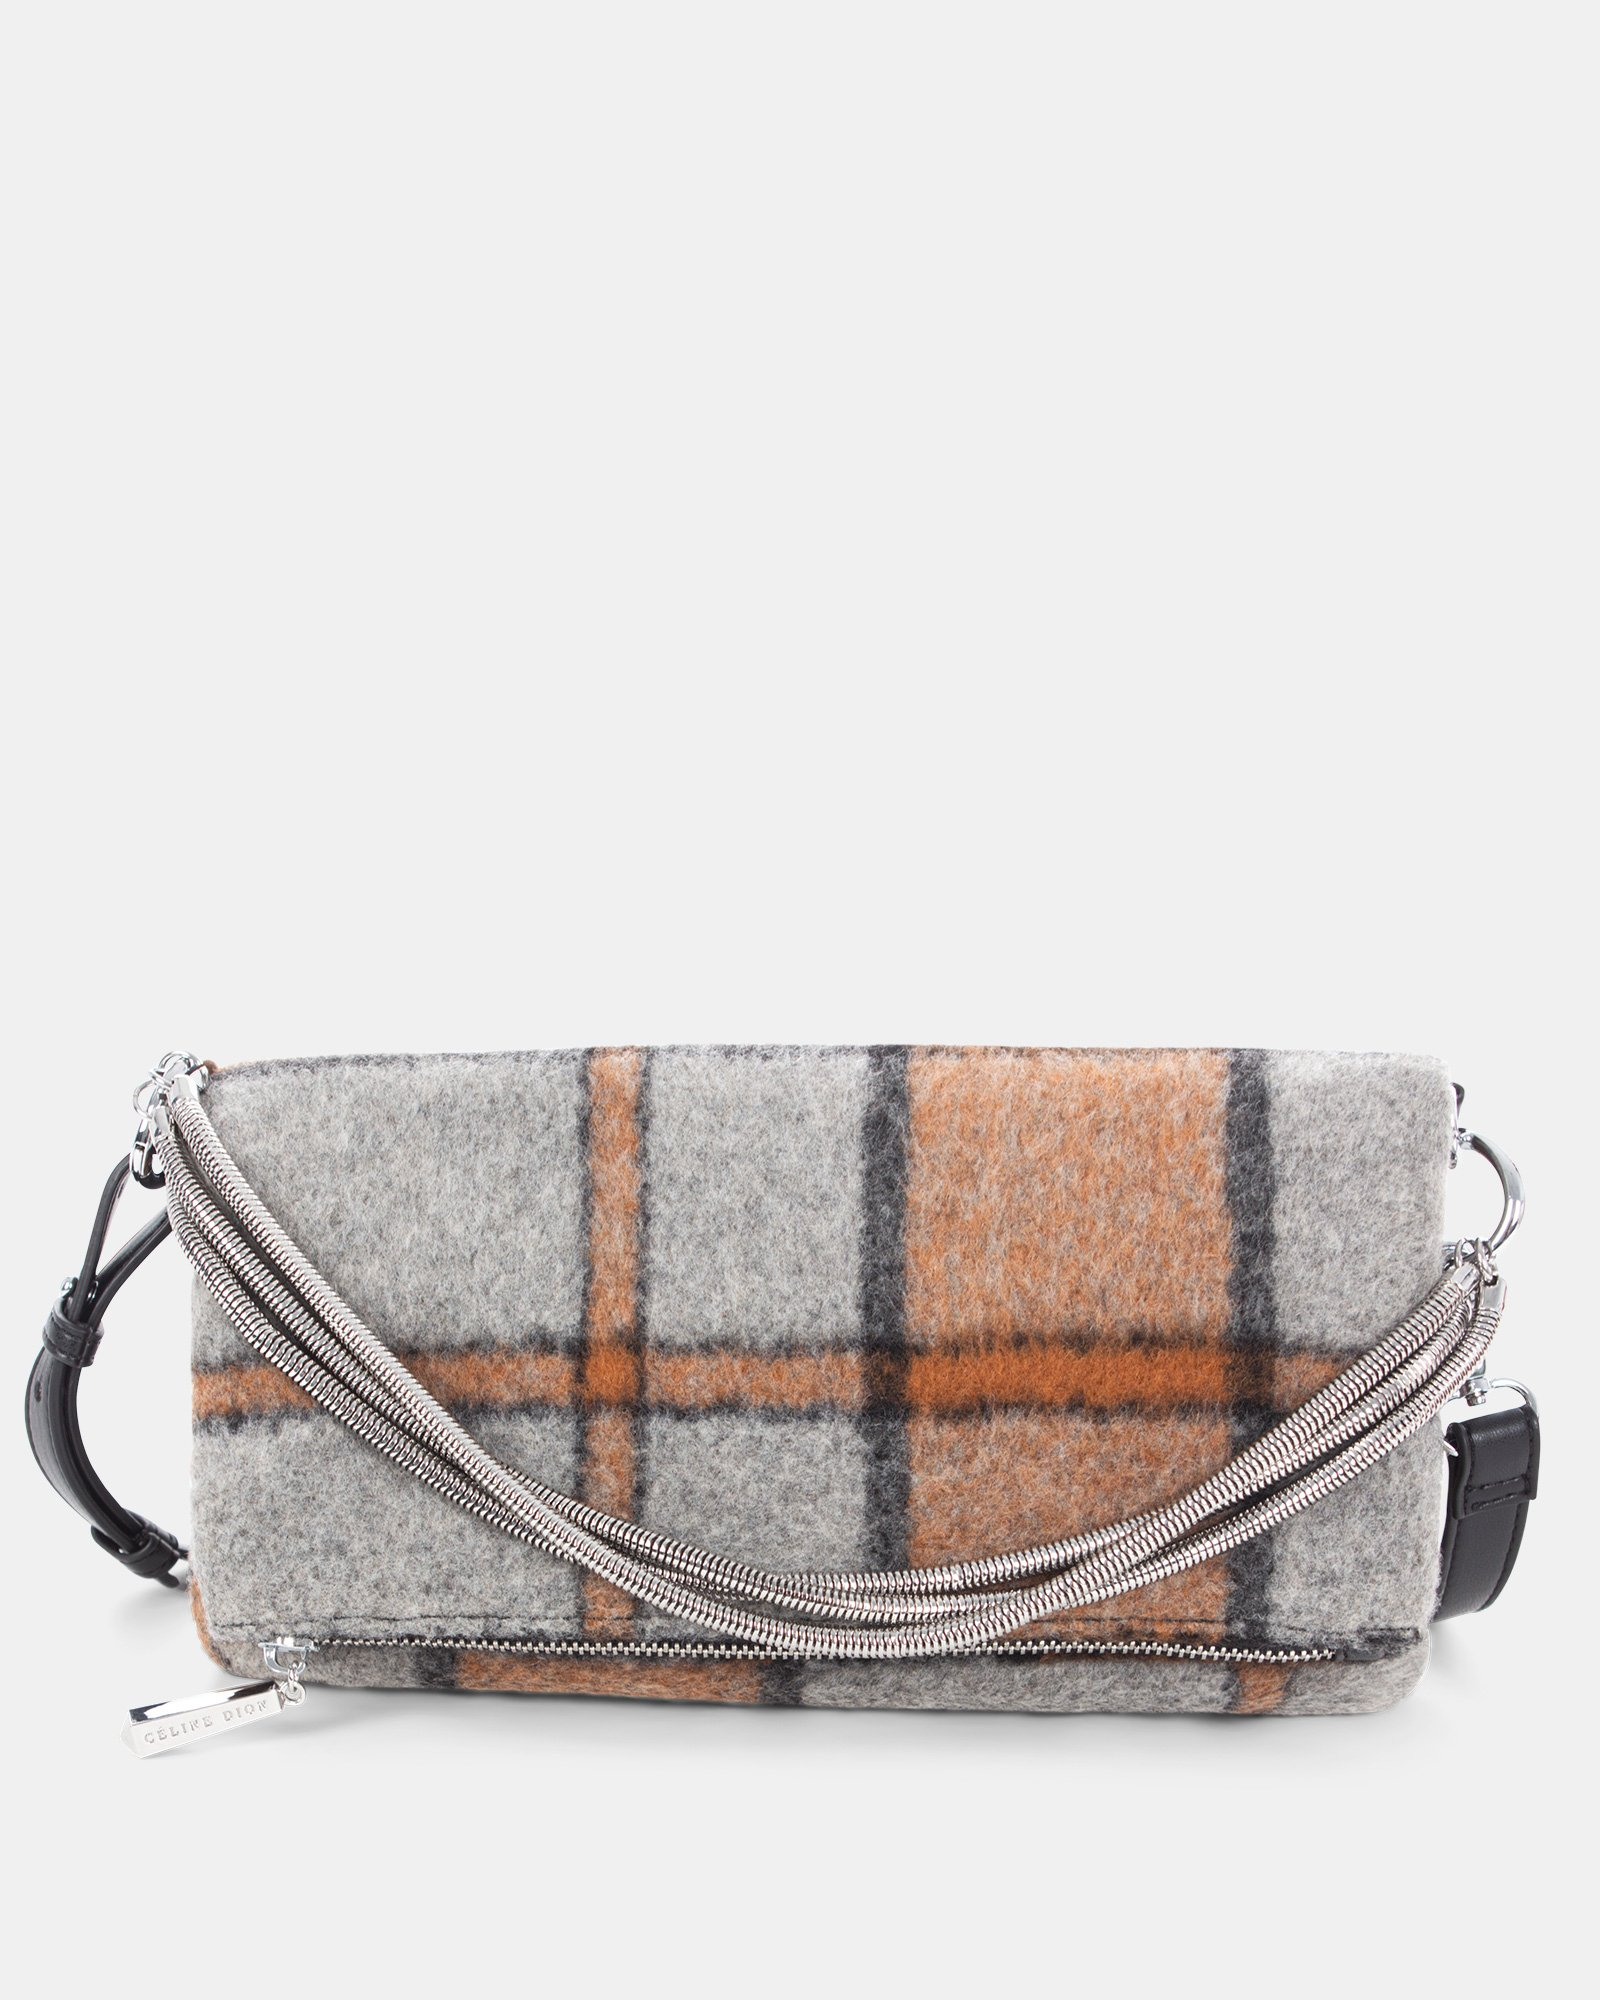 Prelude - clutch with Central zippered section - Rust - Céline Dion - Zoom